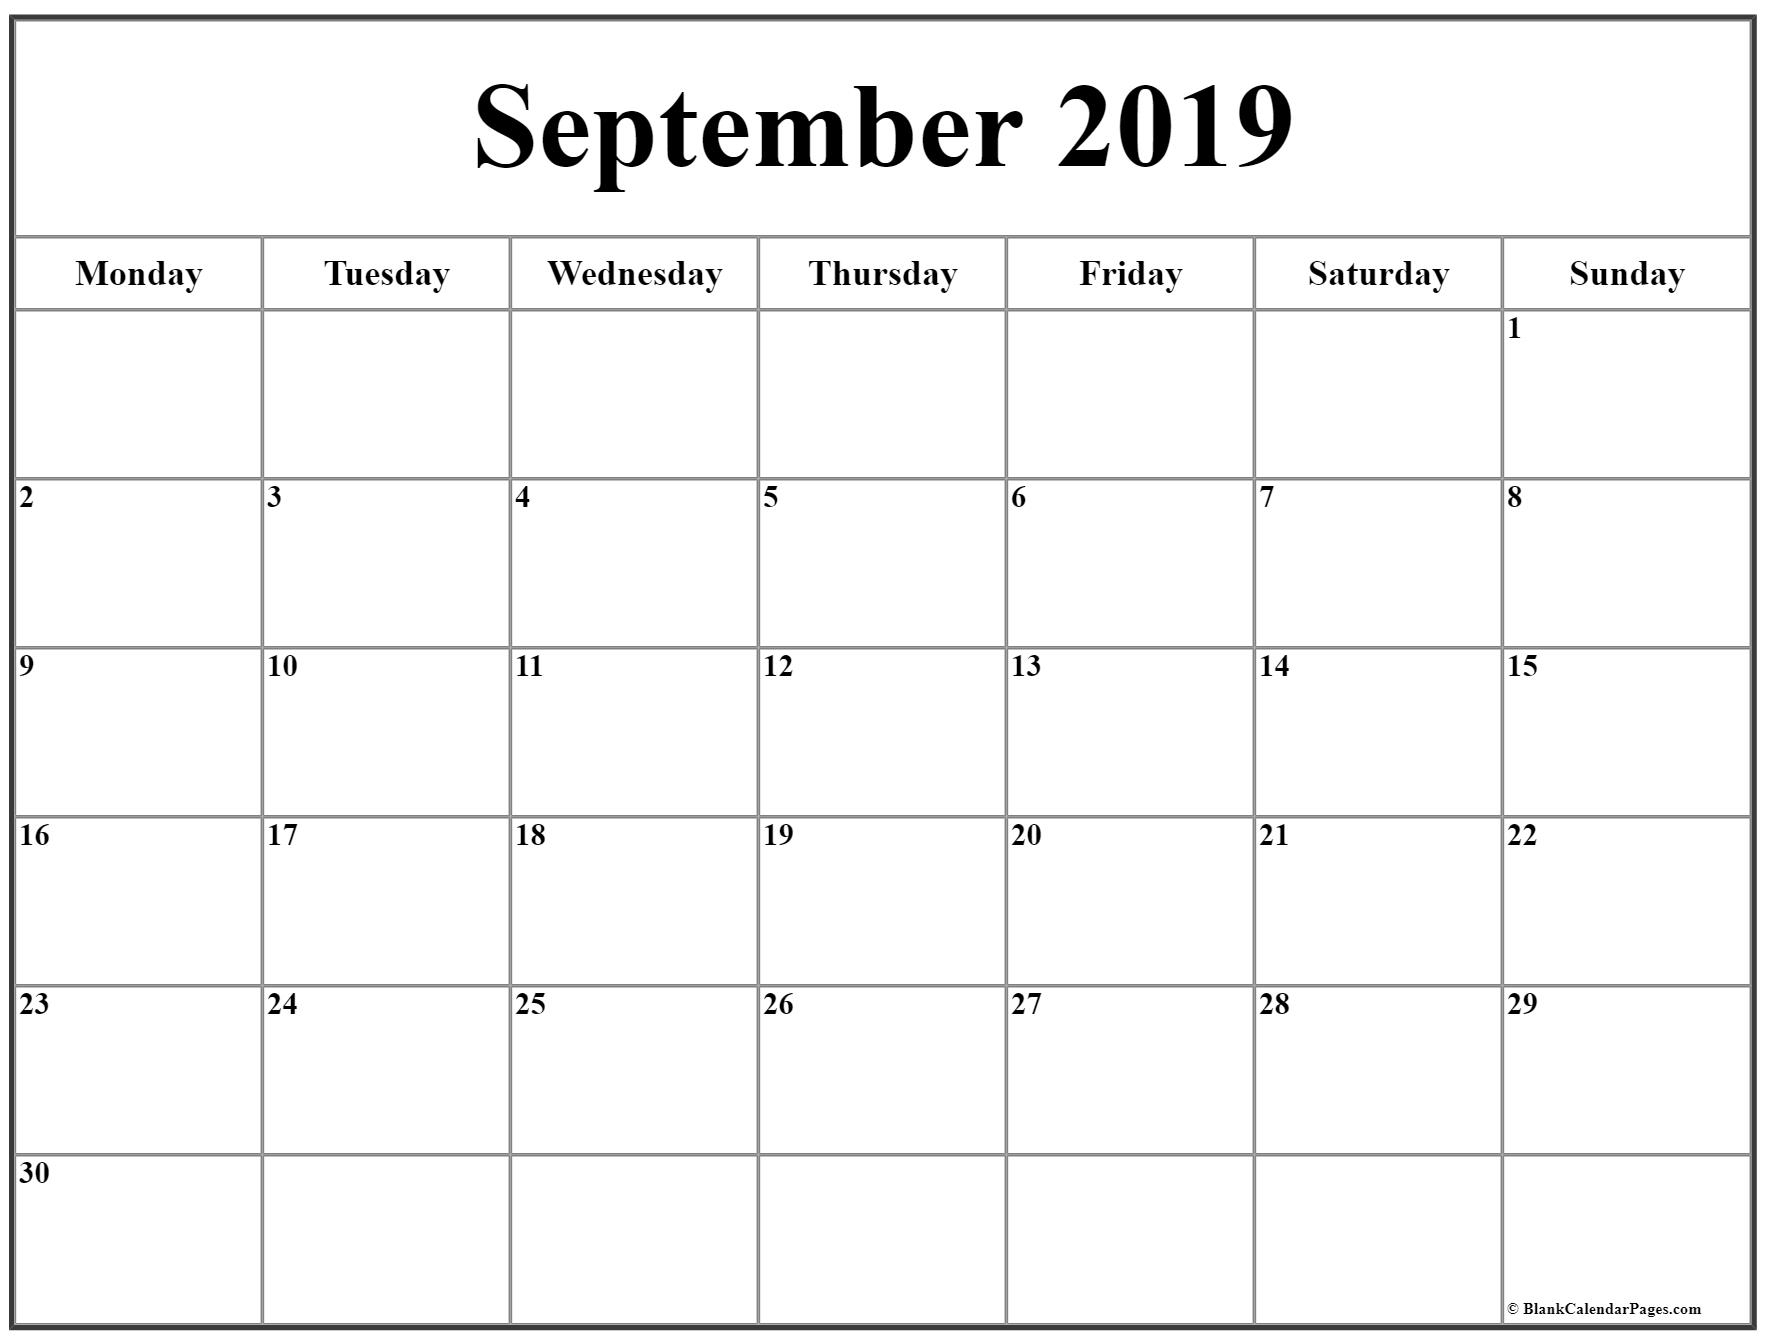 September 2019 Monday Calendar | Monday To Sunday in Saturday To Friday Calendar